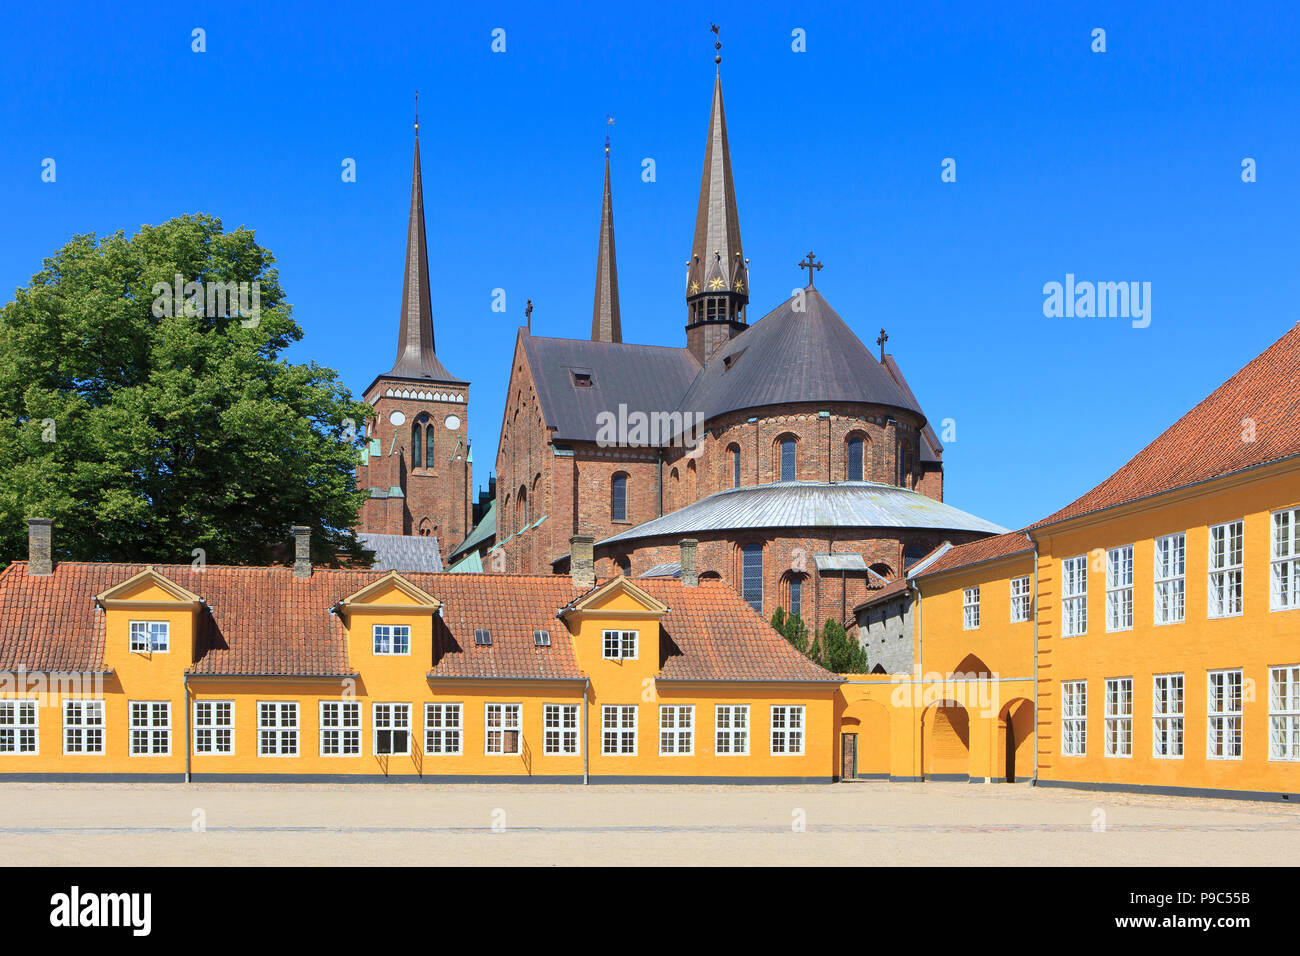 The 12th-century brick Gothic Roskilde Cathedral seen from the Bishop's House in Roskilde, Denmark - Stock Image